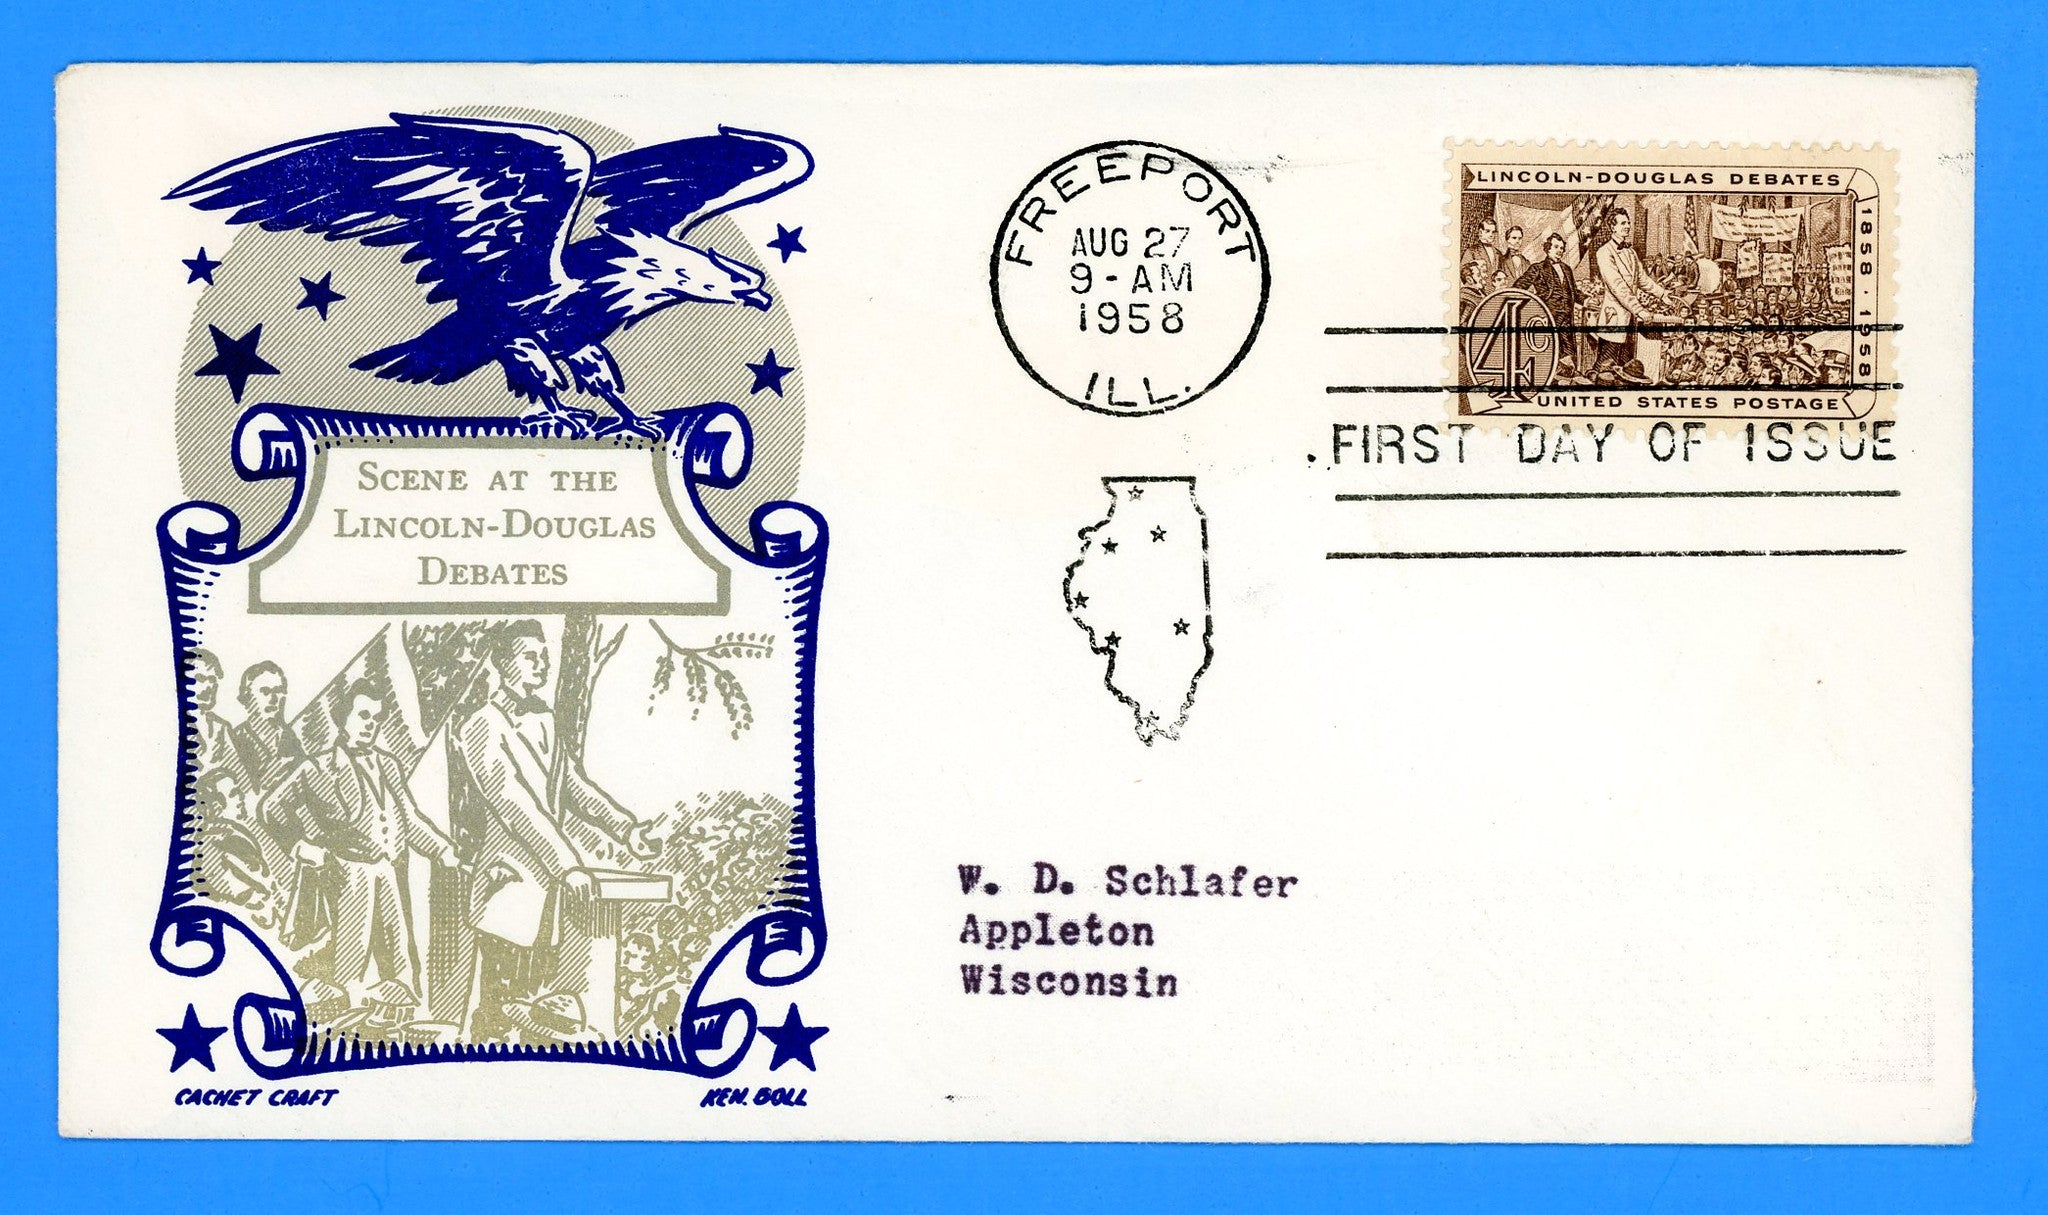 Scott 1424 Lincoln-Douglas Debates First Day Cover by Cachet Craft/Boll